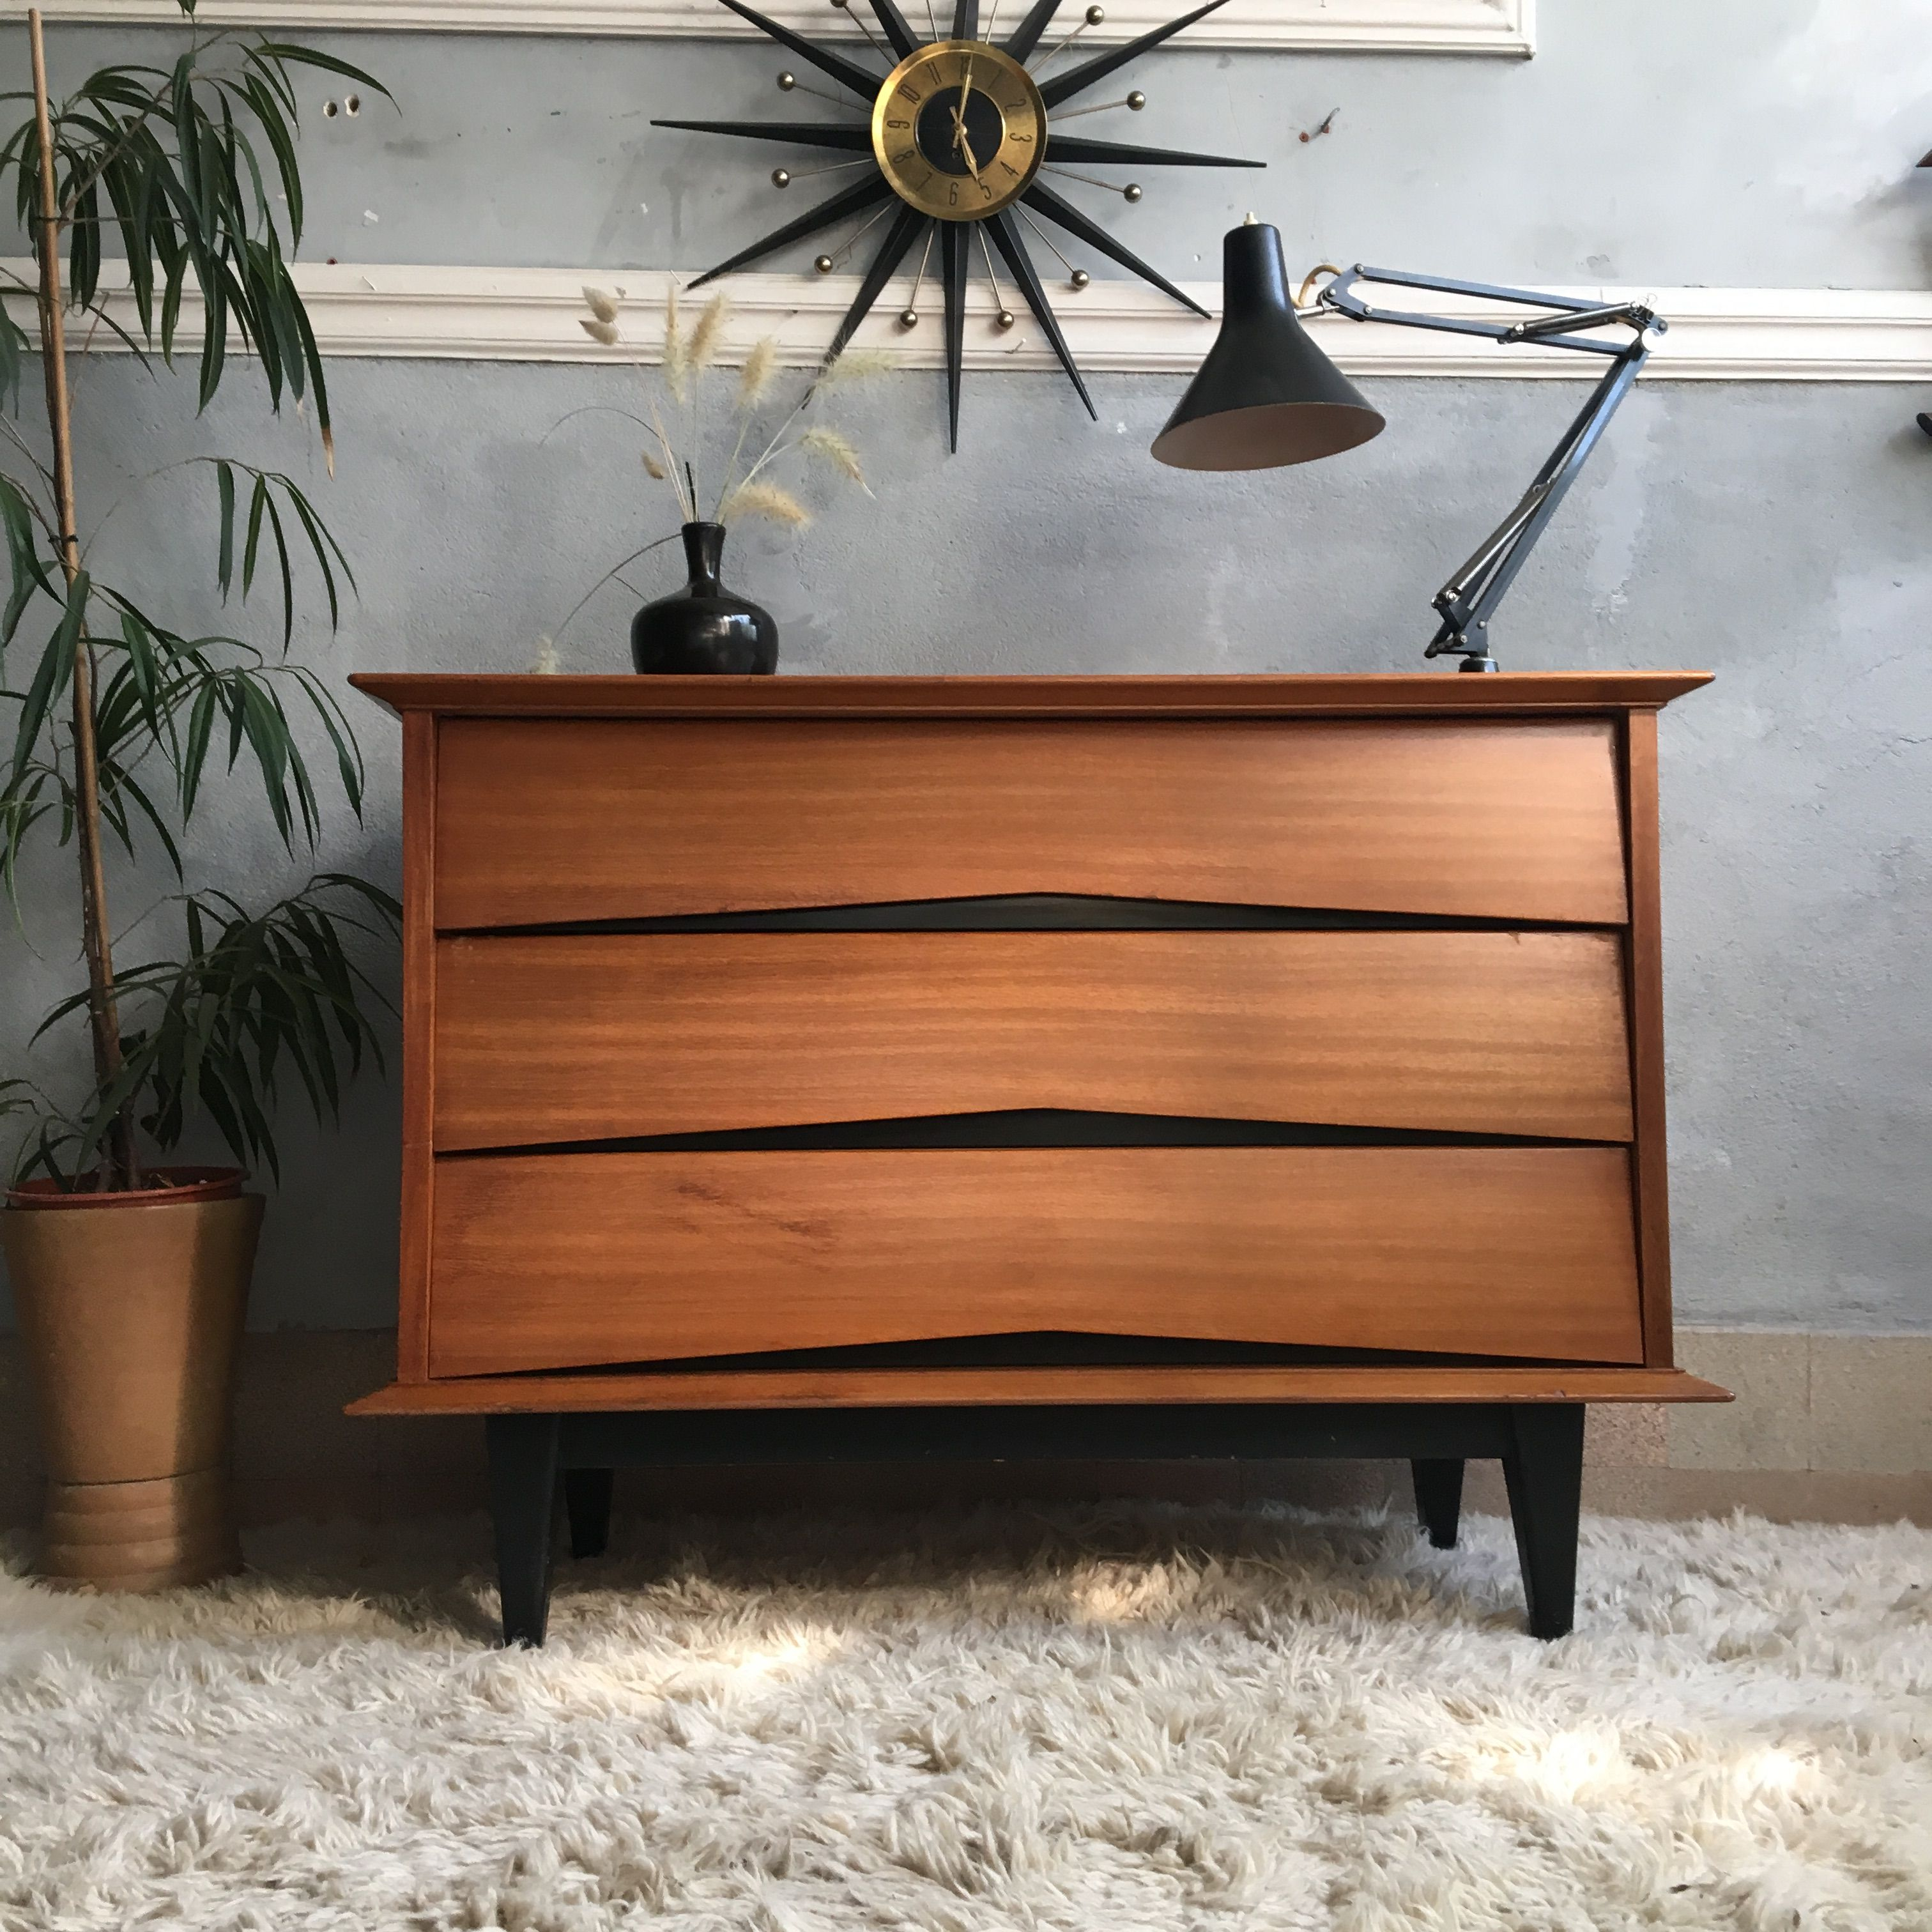 vintage vintage vintage vintage LevitanMobilier midcentury Commode Commode midcentury LevitanMobilier vintage LevitanMobilier vintage Commode jq543RAL